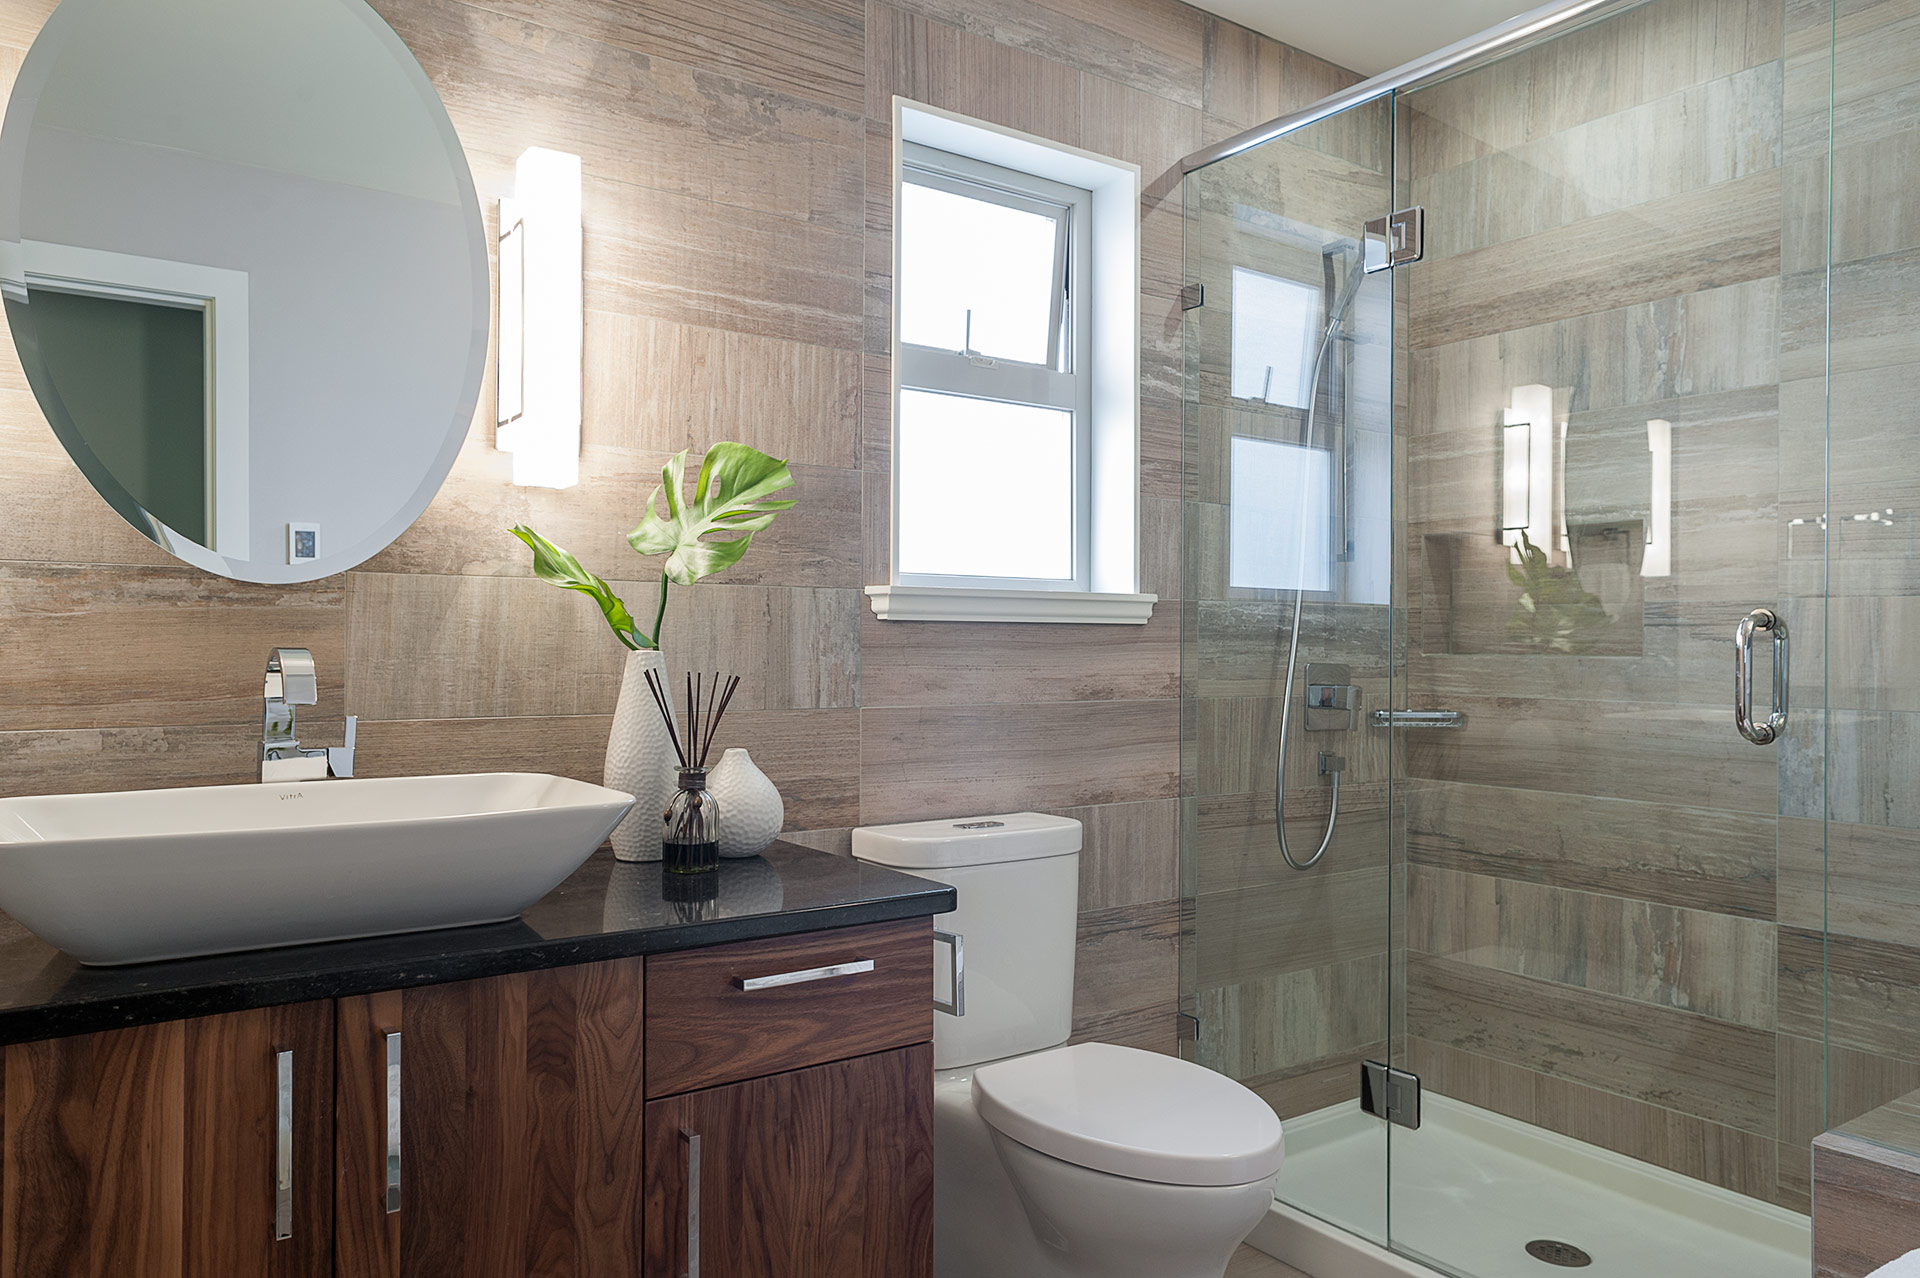 Small bathroom renovation loaded with style modern home for Small bathroom reno